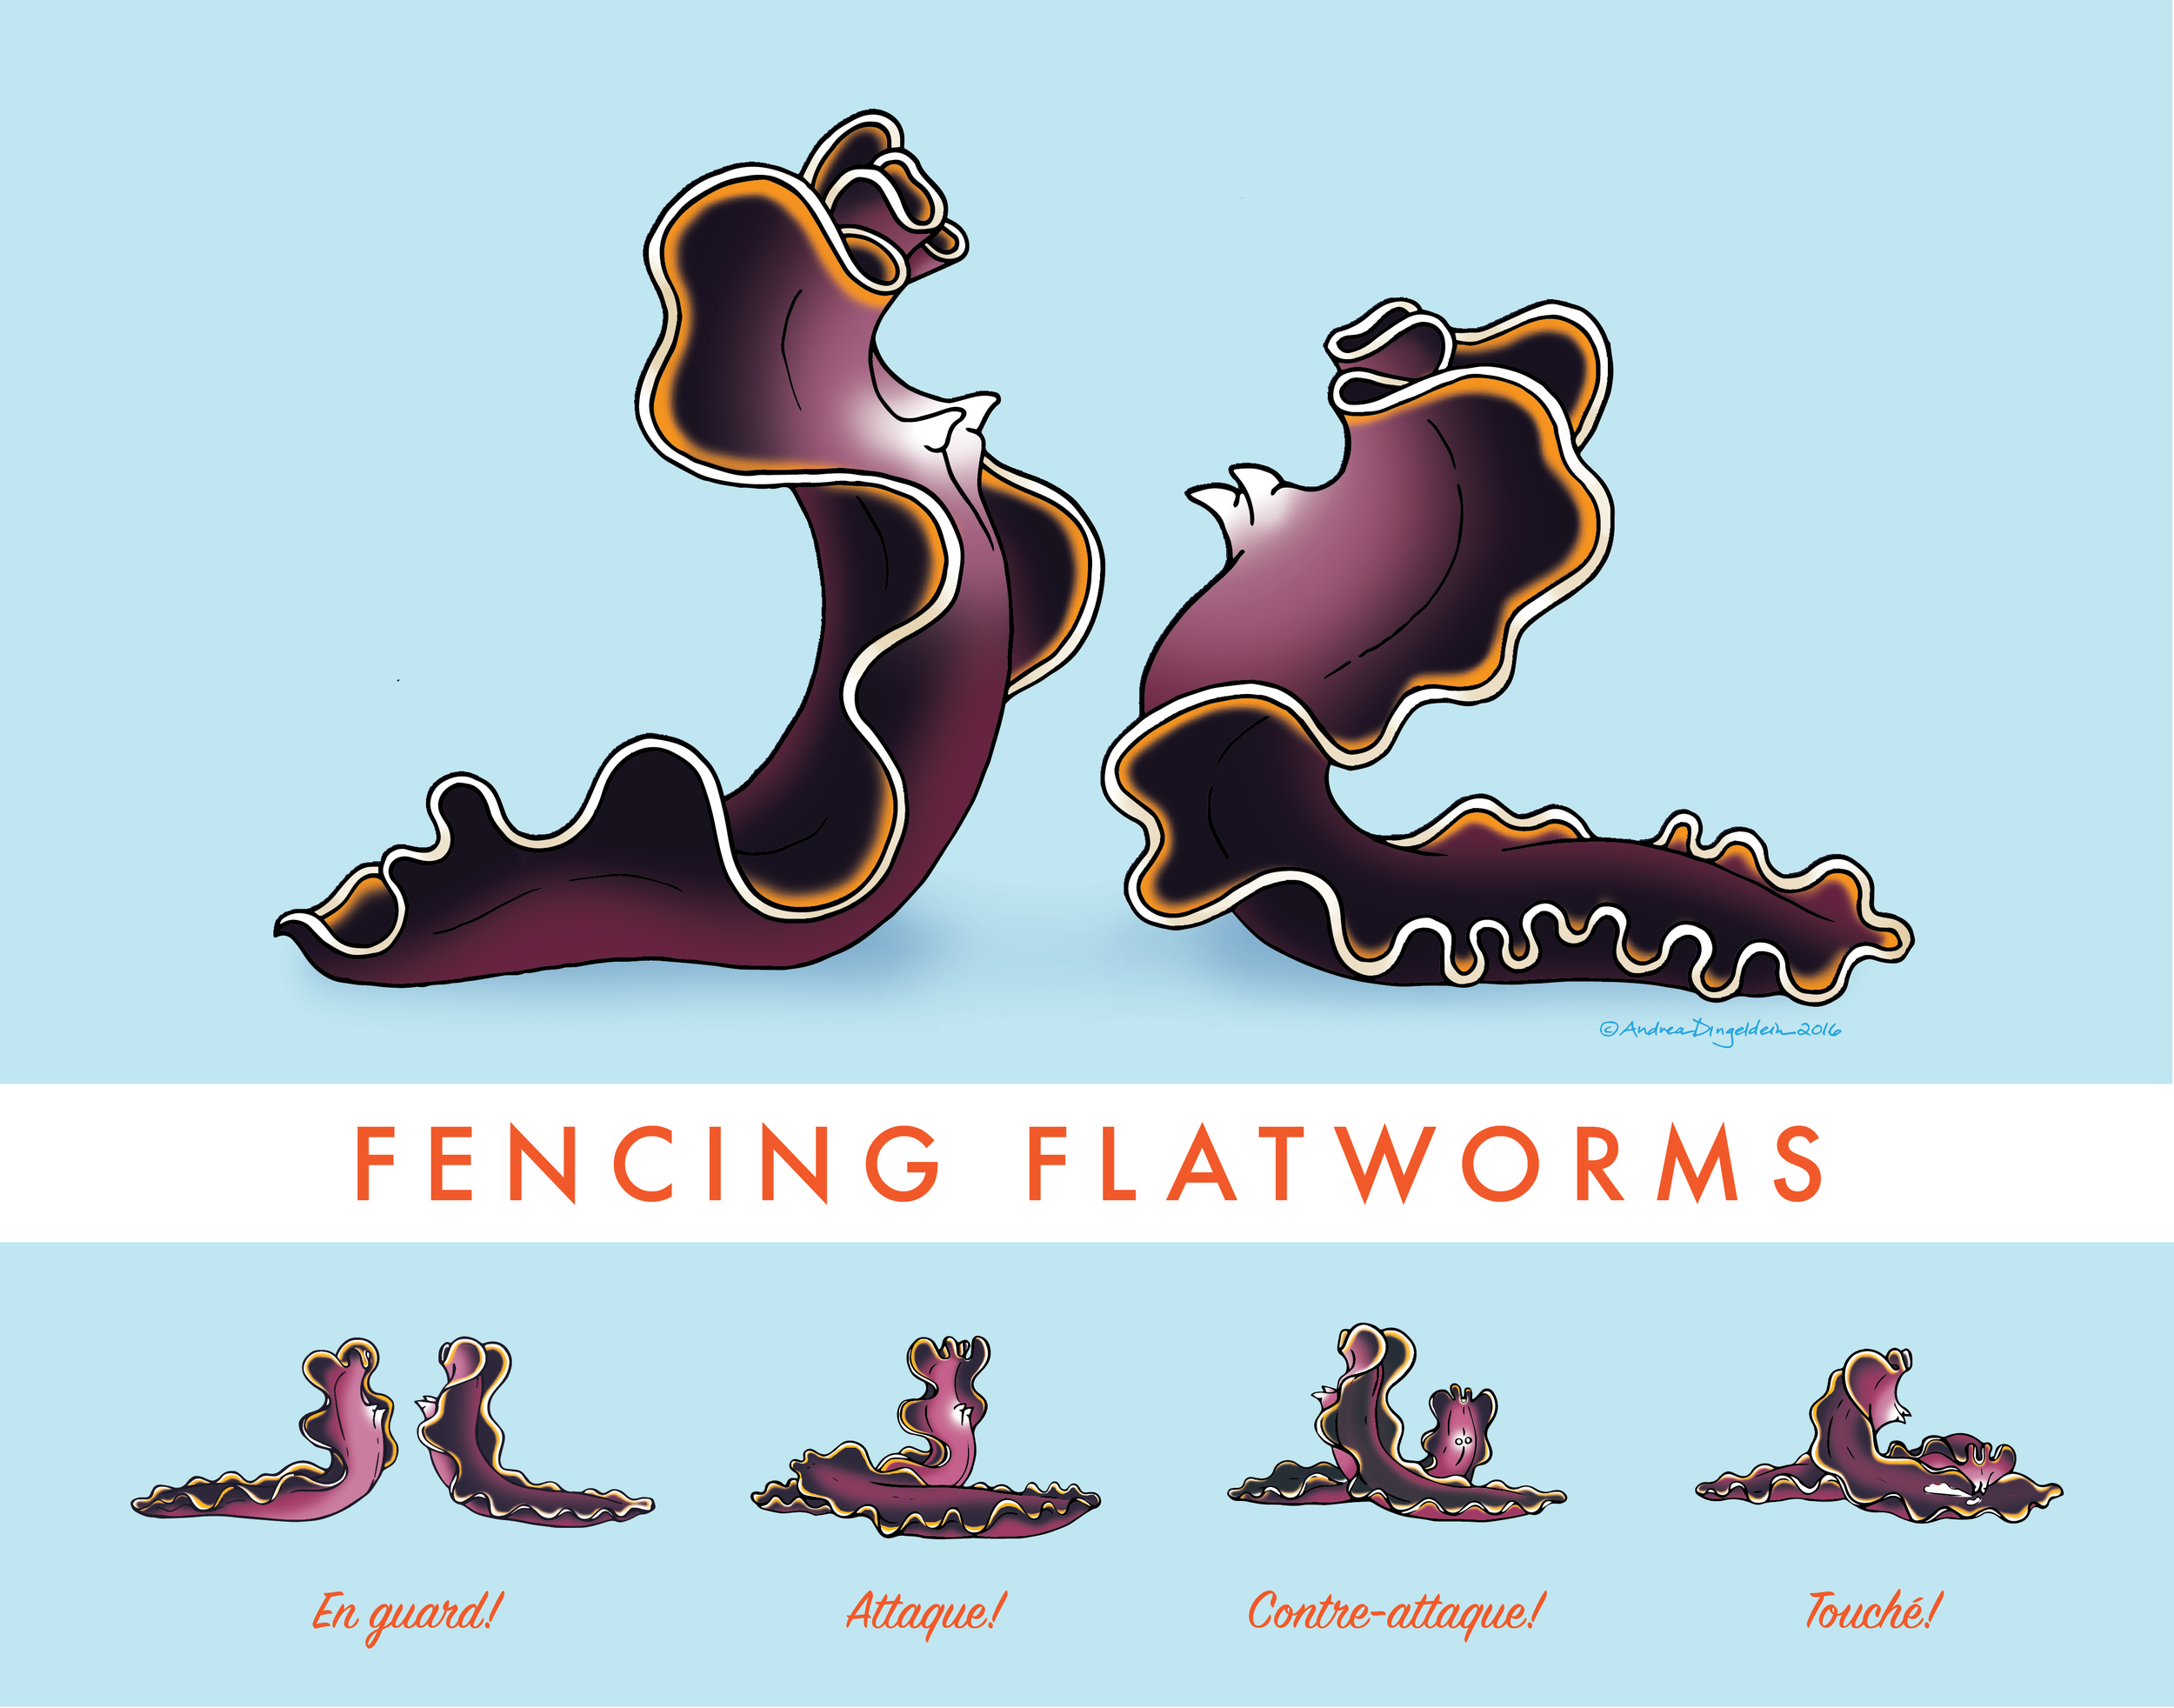 Flatworm Penis Fencing